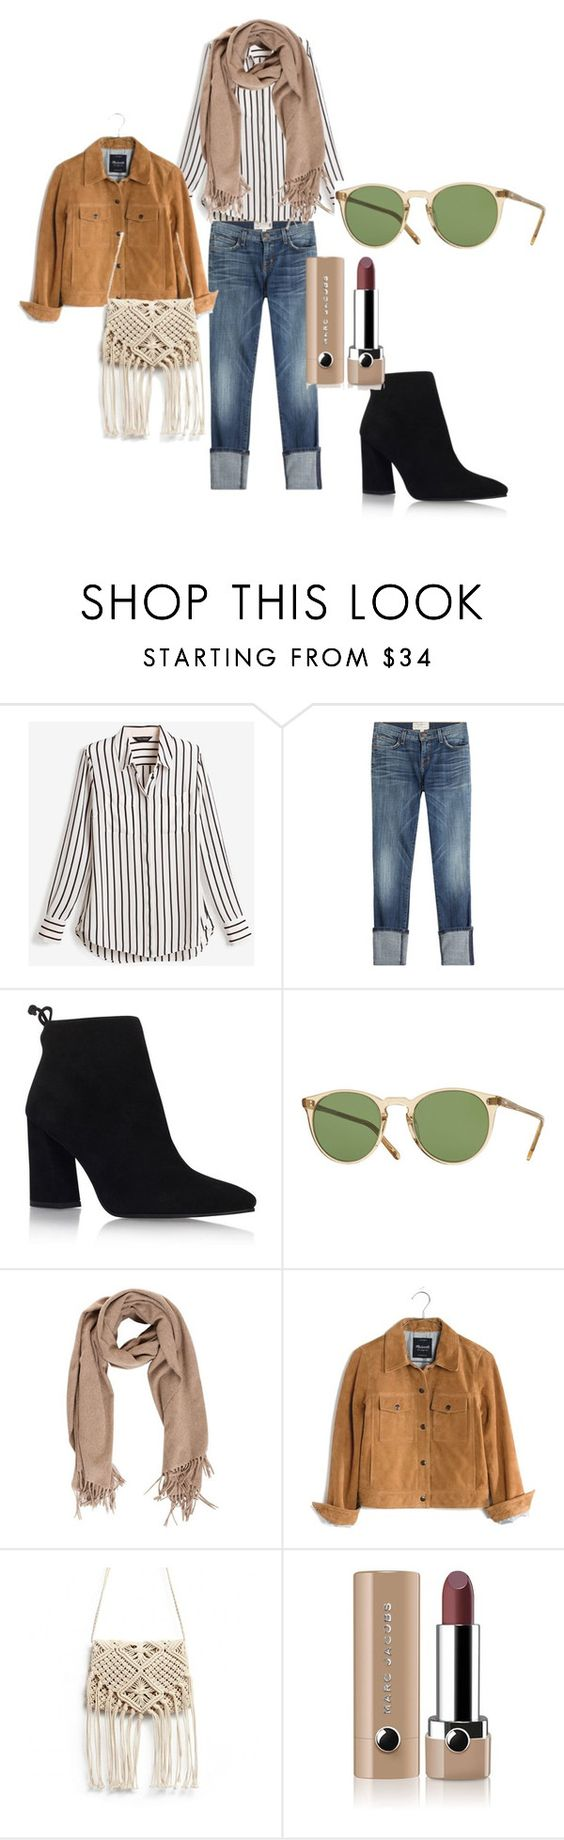 """""""Highway"""" by fashion-classy1 on Polyvore featuring moda, White House Black Market, Current/Elliott, Stuart Weitzman, Oliver Peoples, Madewell y Marc Jacobs"""